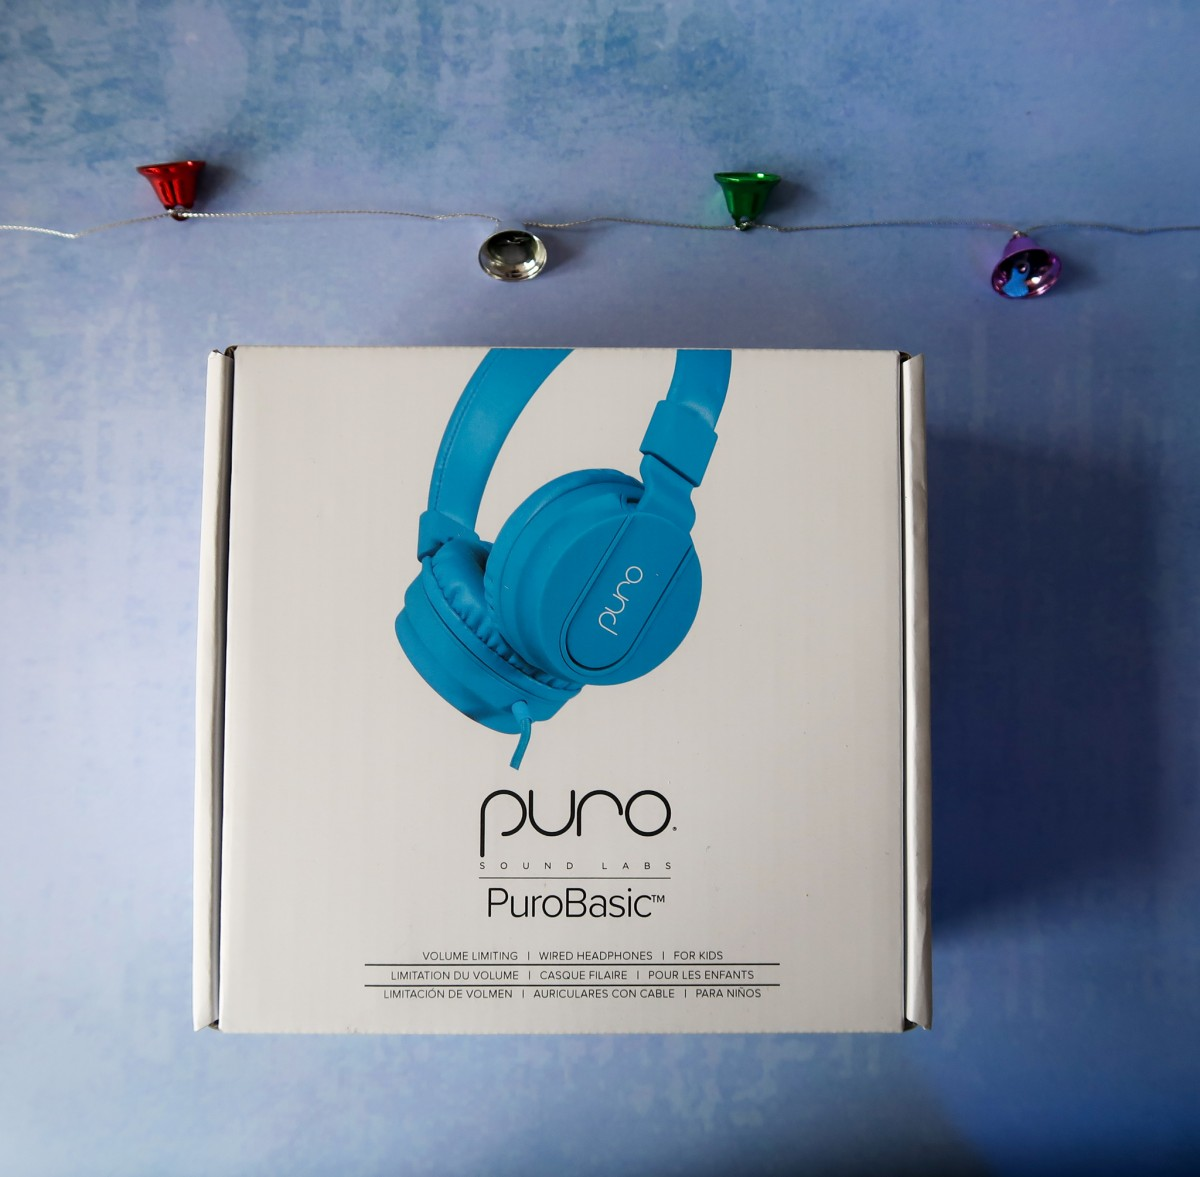 Puro Headphones for children from Sound Labs